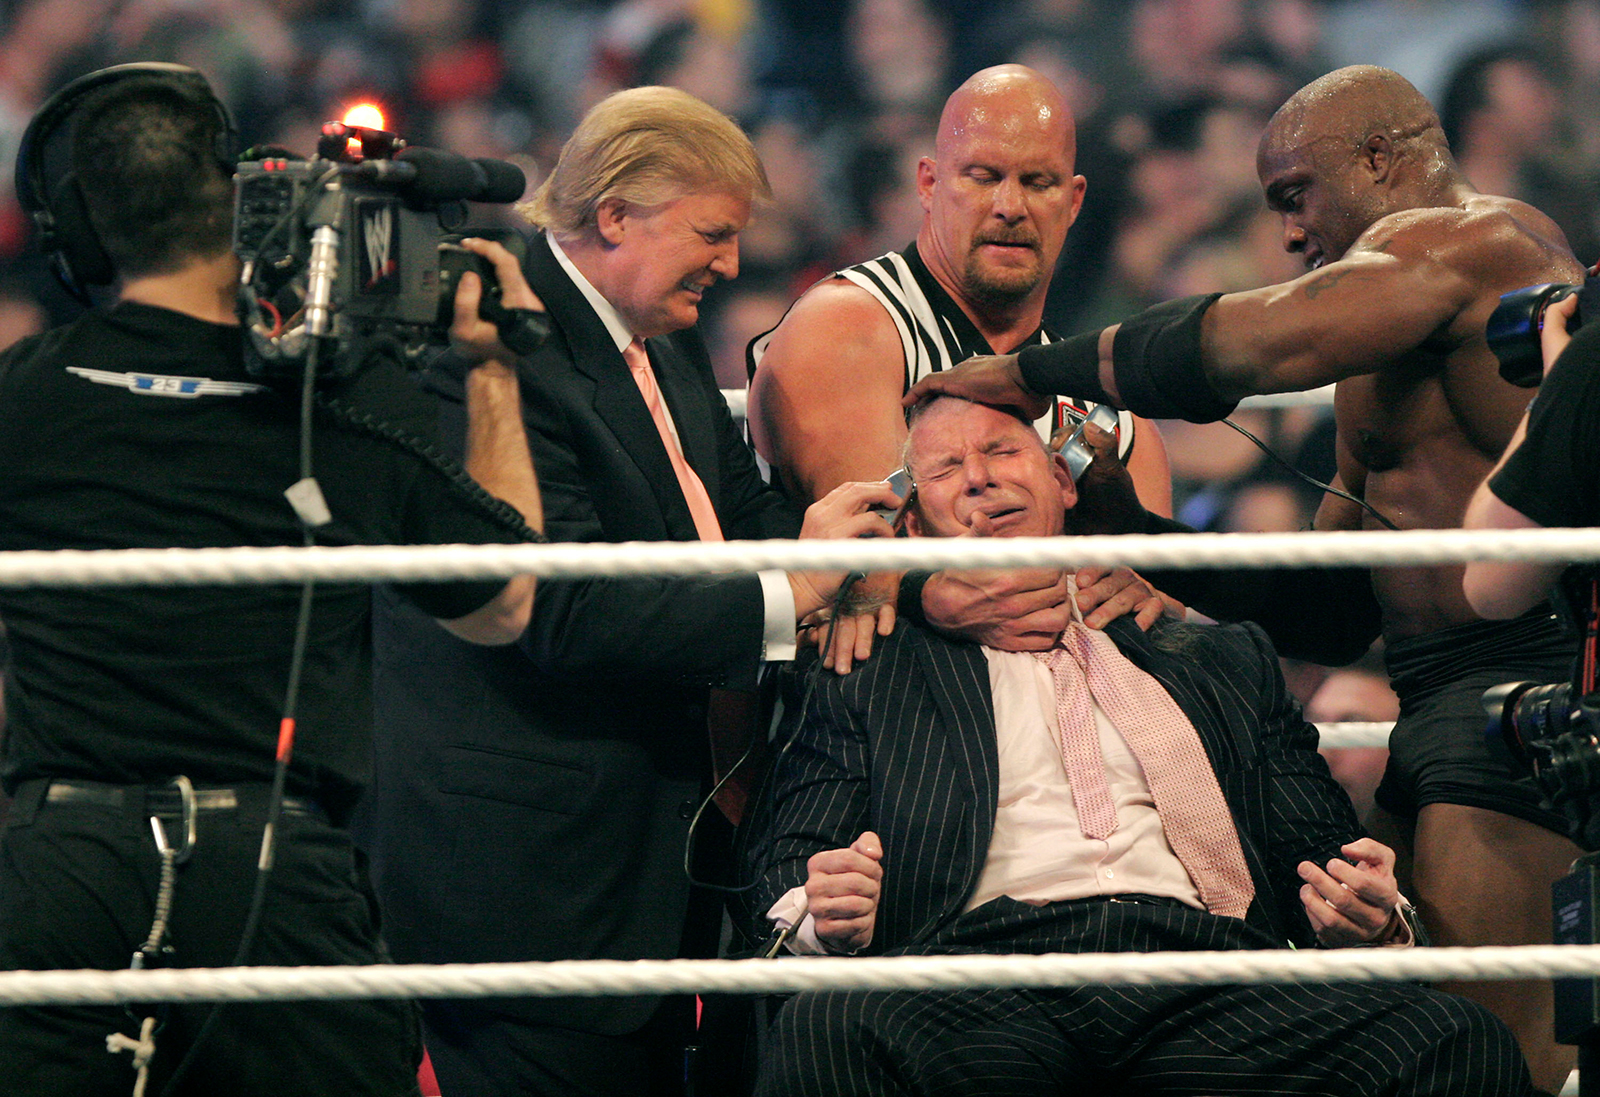 WWE chairman Vince McMahon (center) has his head shaved by Donald Trump and Bobby Lashley (right) while being held down by ''Stone Cold'' Steve Austin after losing a bet in the Battle of the Billionaires at the 2007 World Wrestling Entertainment's Wrestlemania at Ford Field in Detroit, Michigan, on April 1, 2007.